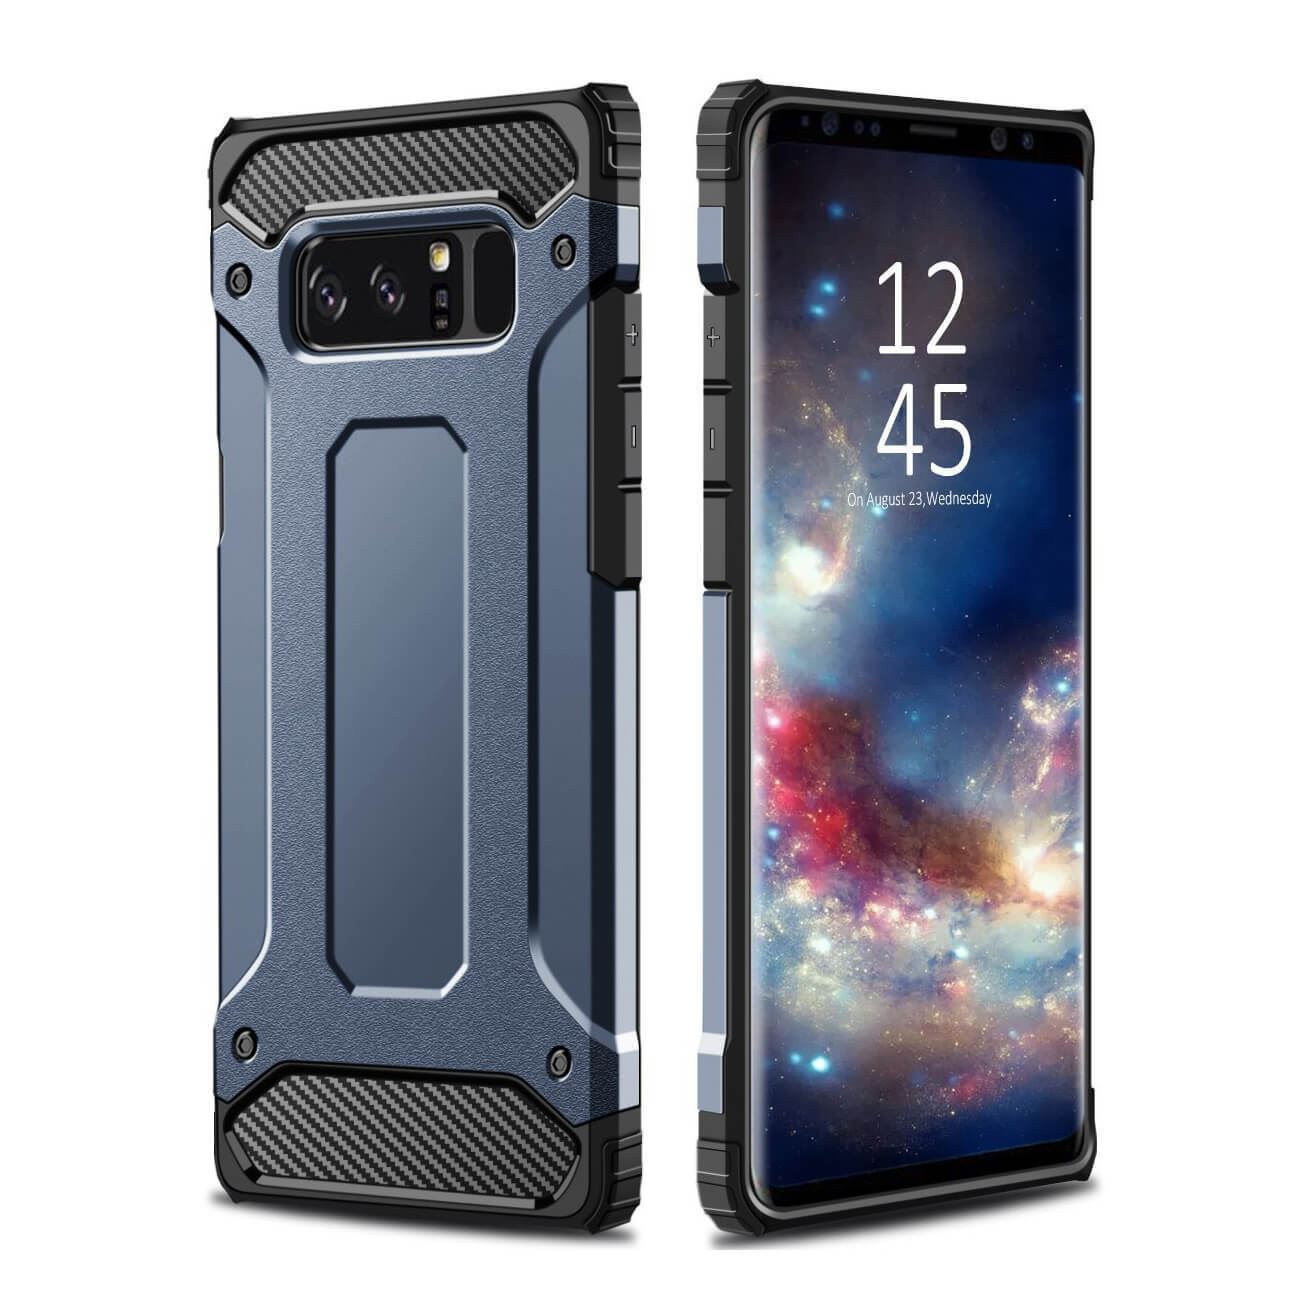 Hybrid-Armor-Case-For-Samsung-Galaxy-S7-S8-S9-Shockproof-Rugged-Bumper-Cover thumbnail 60